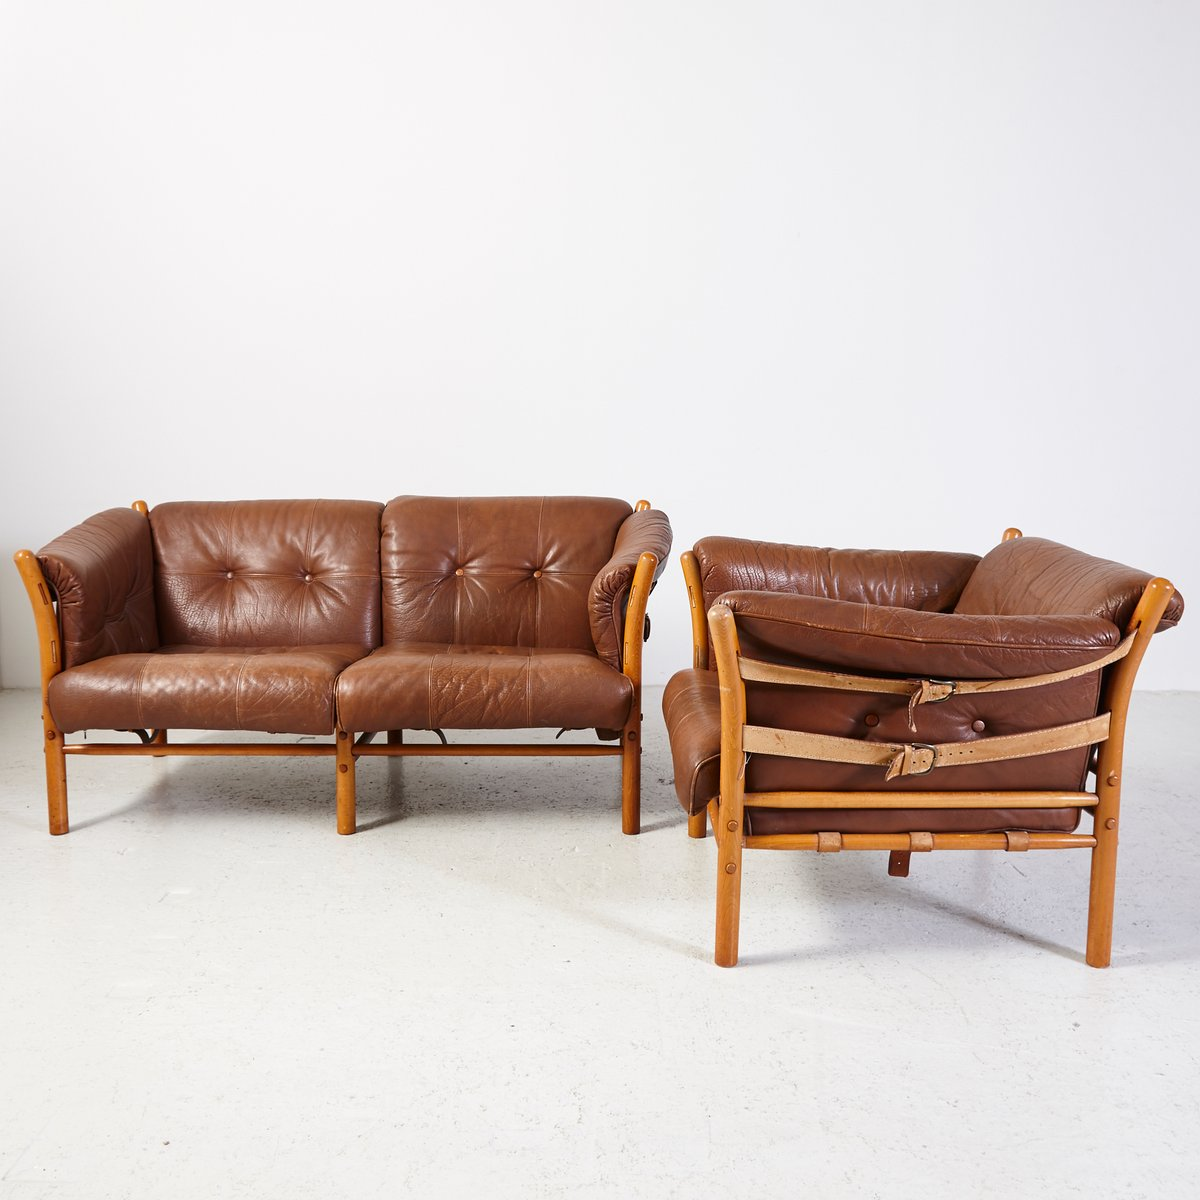 Vintage ilona armchair and sofa by arne norell for sale at for Sofa armchair